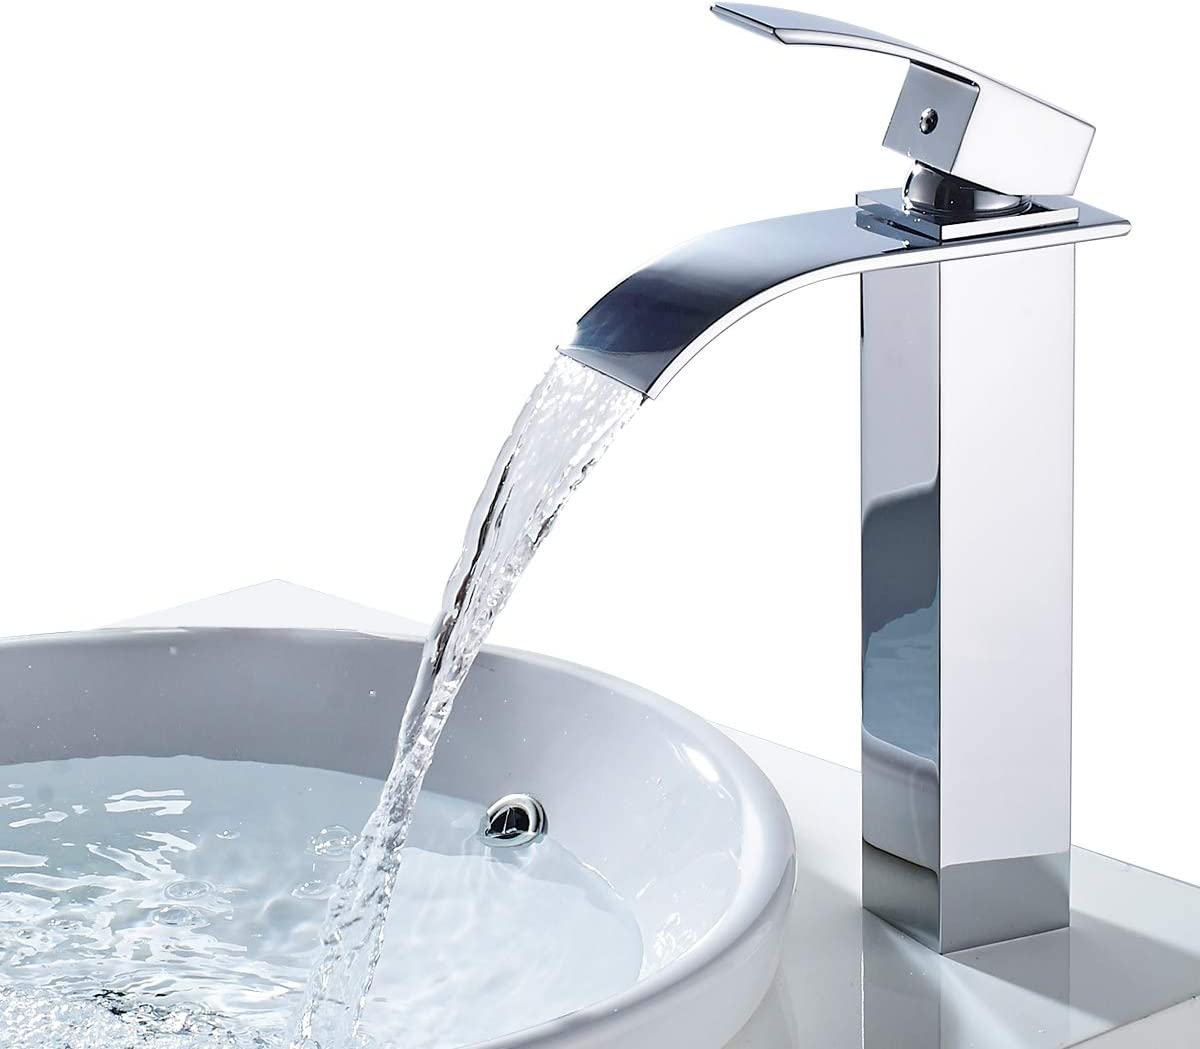 ROVATE Bathroom Vessel Sink Faucet Chrome, Brass Waterfall faucet Single Handle, Single Hole Washroom Tap, Hot and Cold Water Mixer Deck Mounted